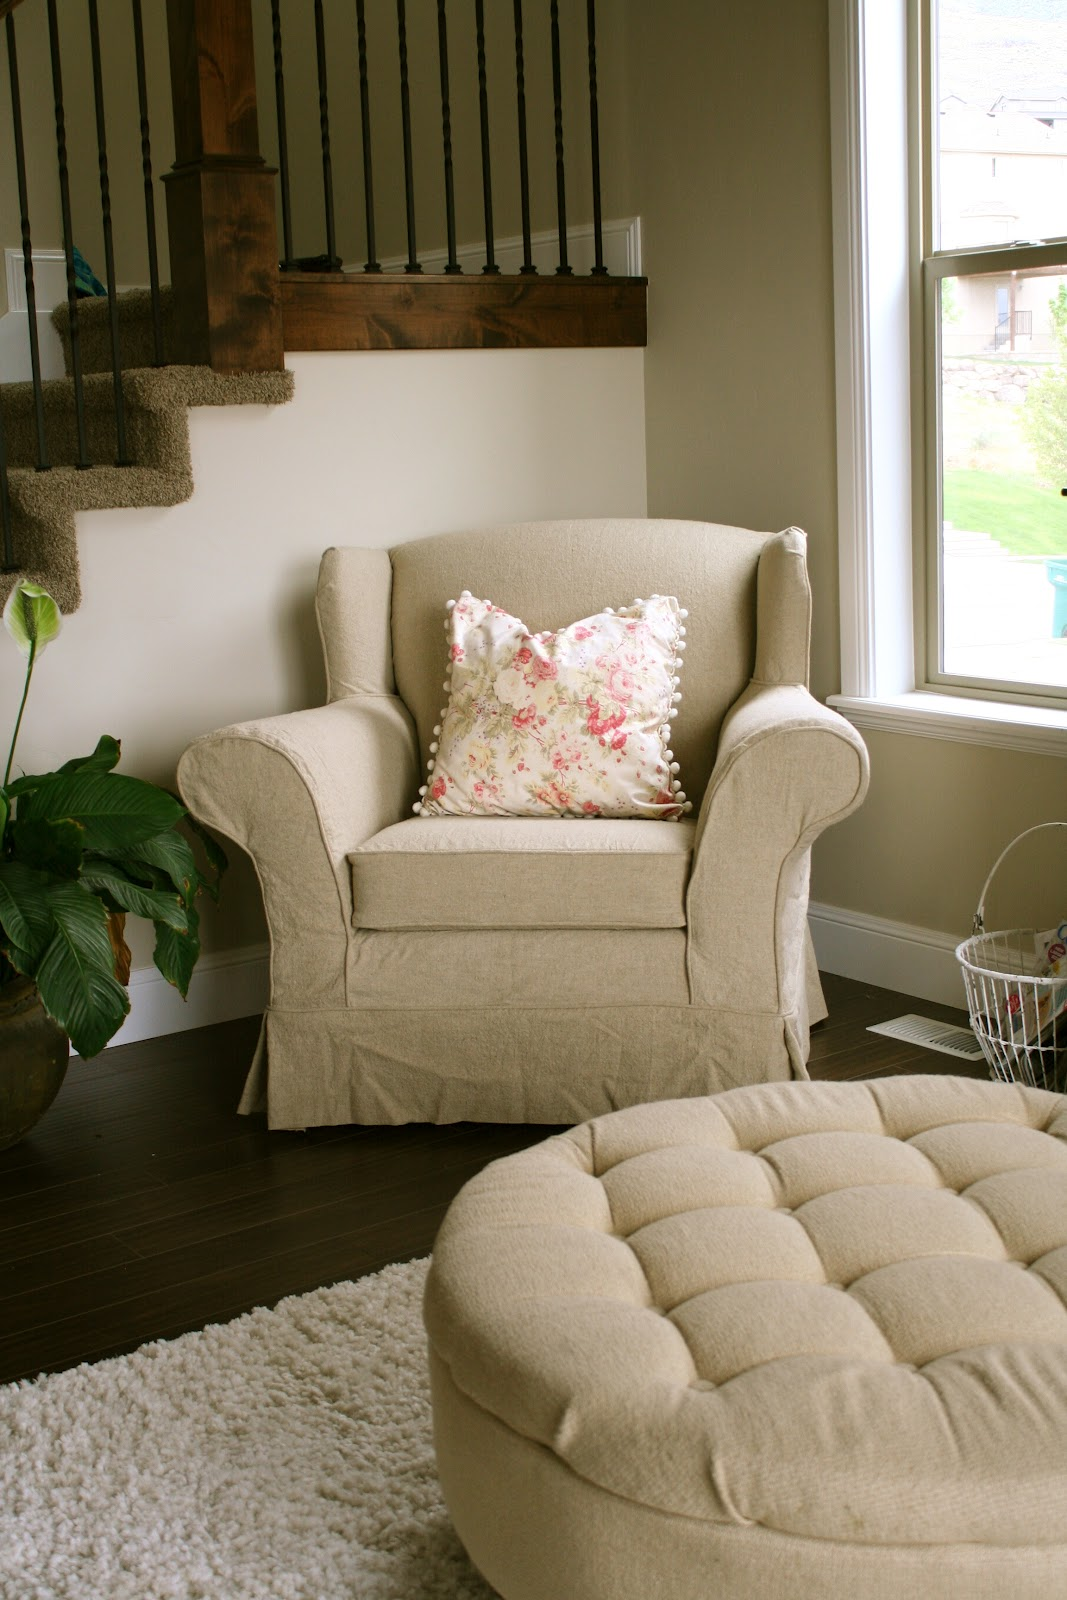 Custom Slipcovers By Shelley Tan Linen Chair And